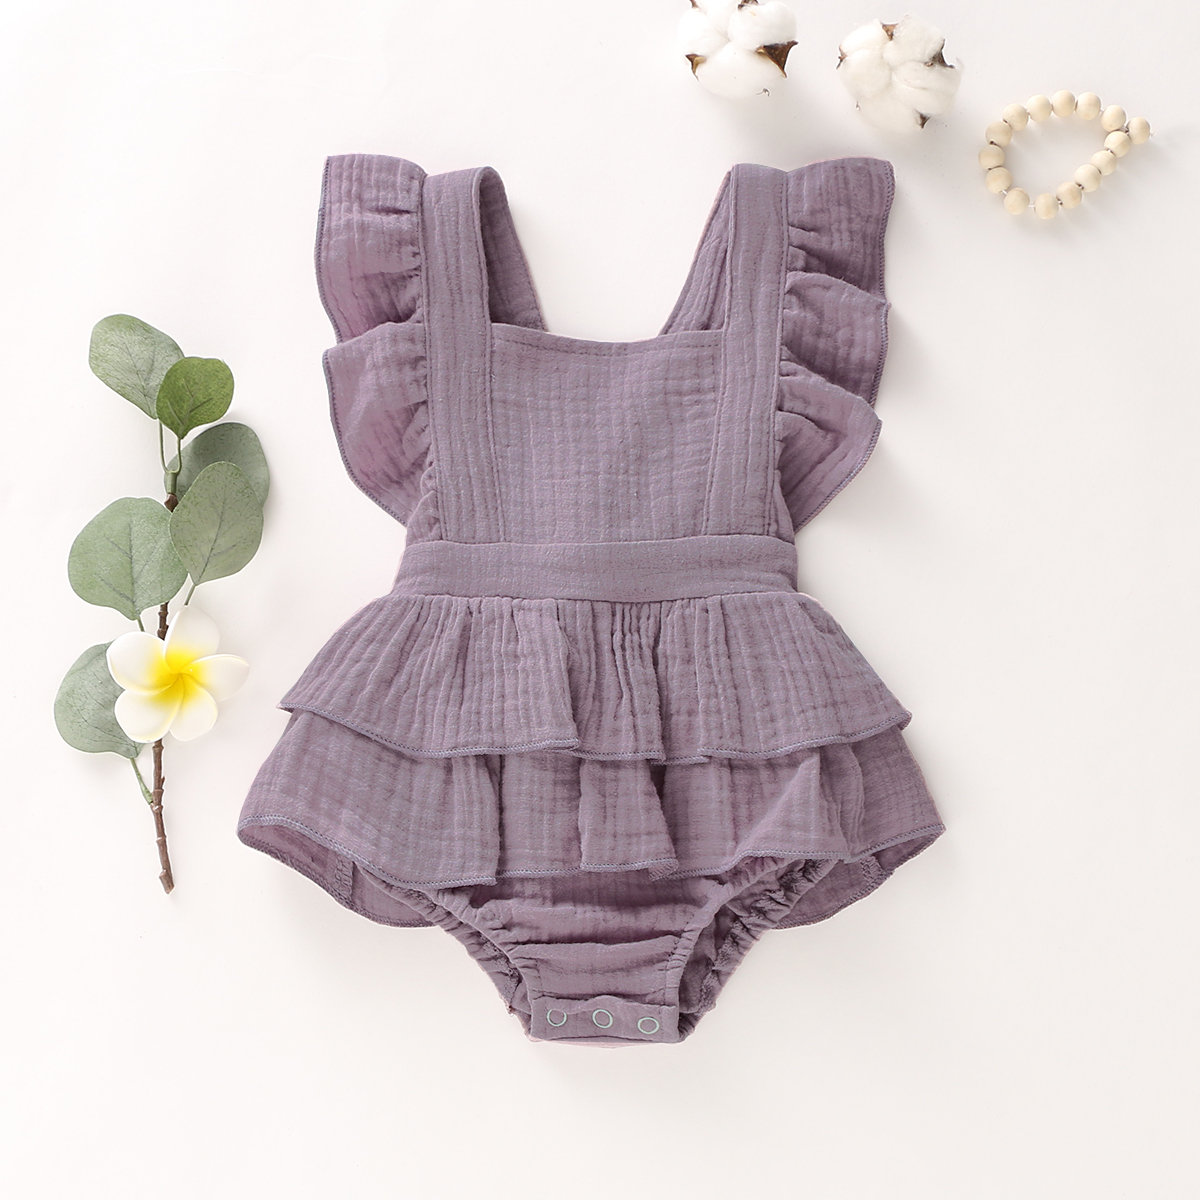 Pudcoco Newborn Baby Girl Clothes Sleeveless Solid Color Ruffle Romper Jumpsuit One-Piece Outfit Sunsuit Clothes